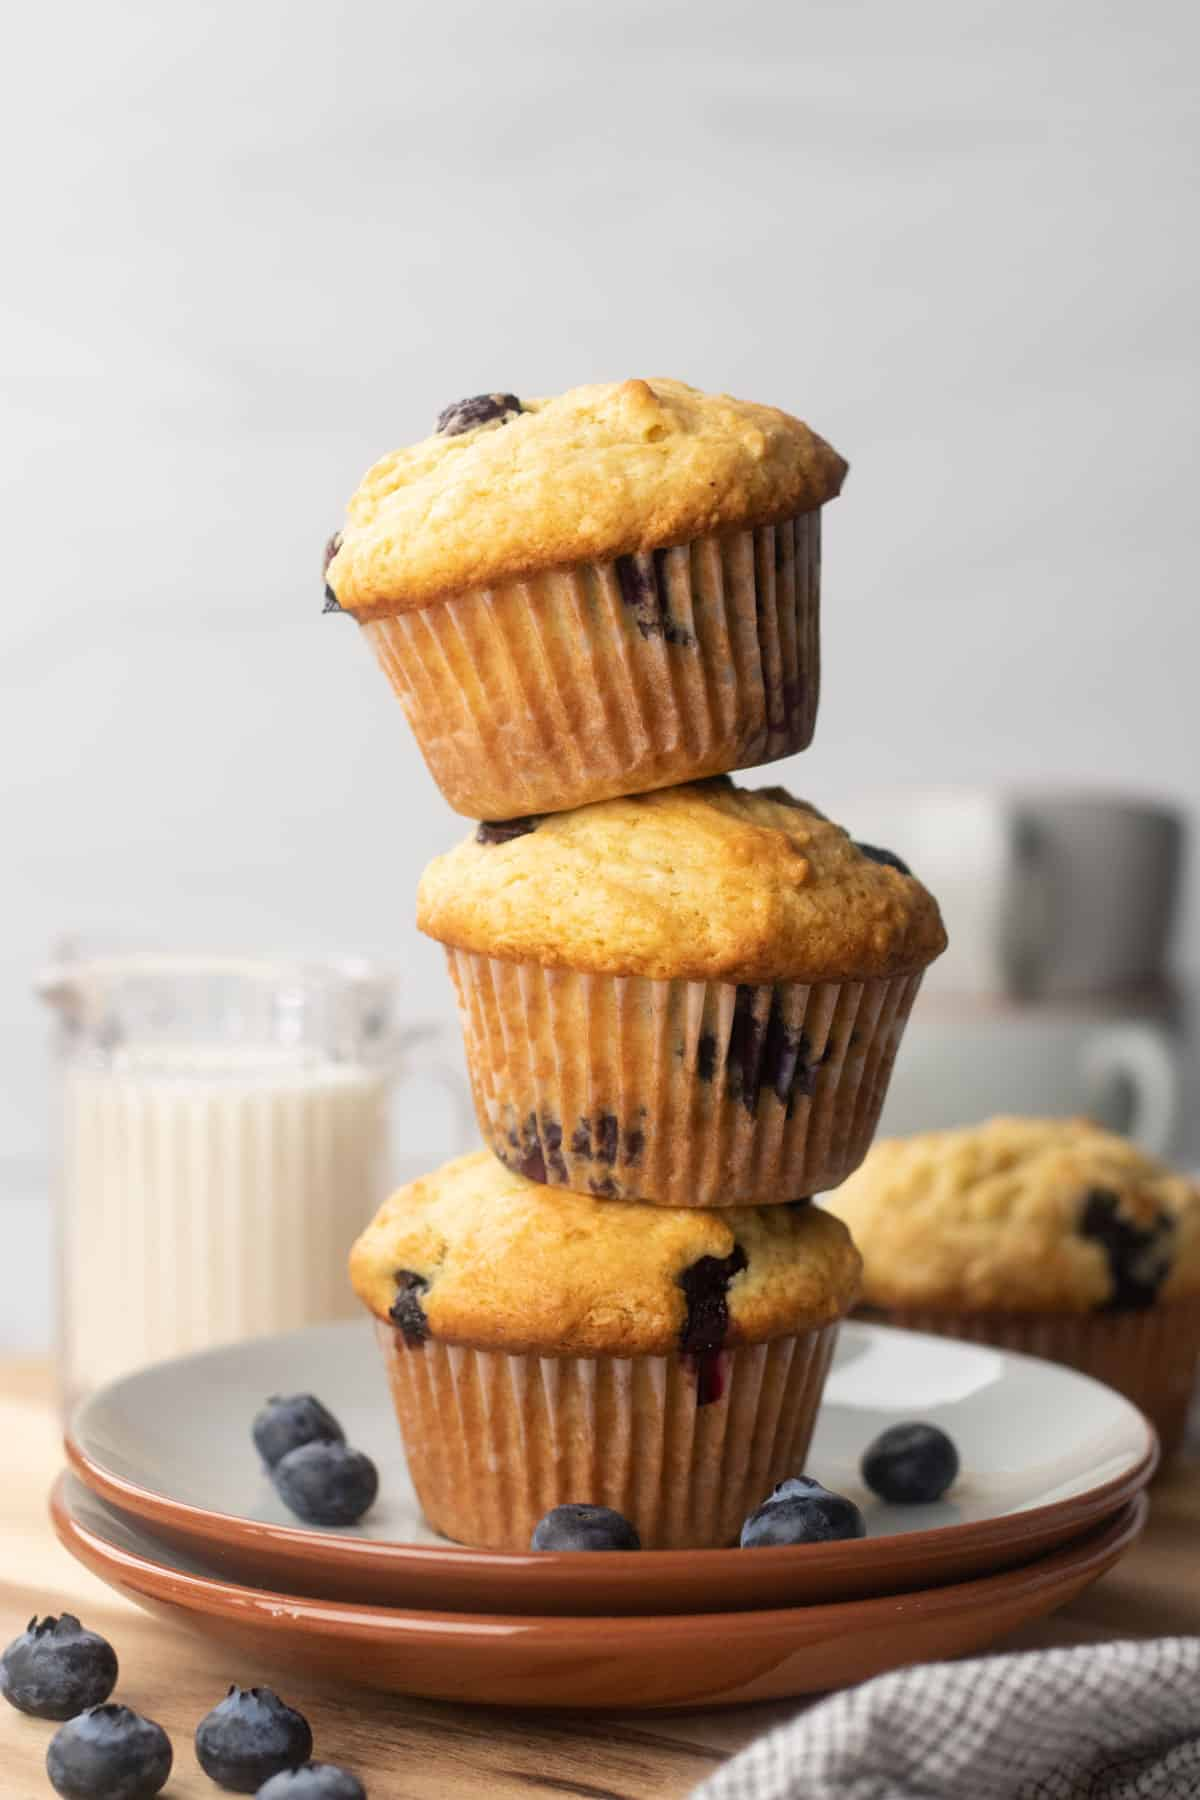 Three Blueberry muffins on top of each other.